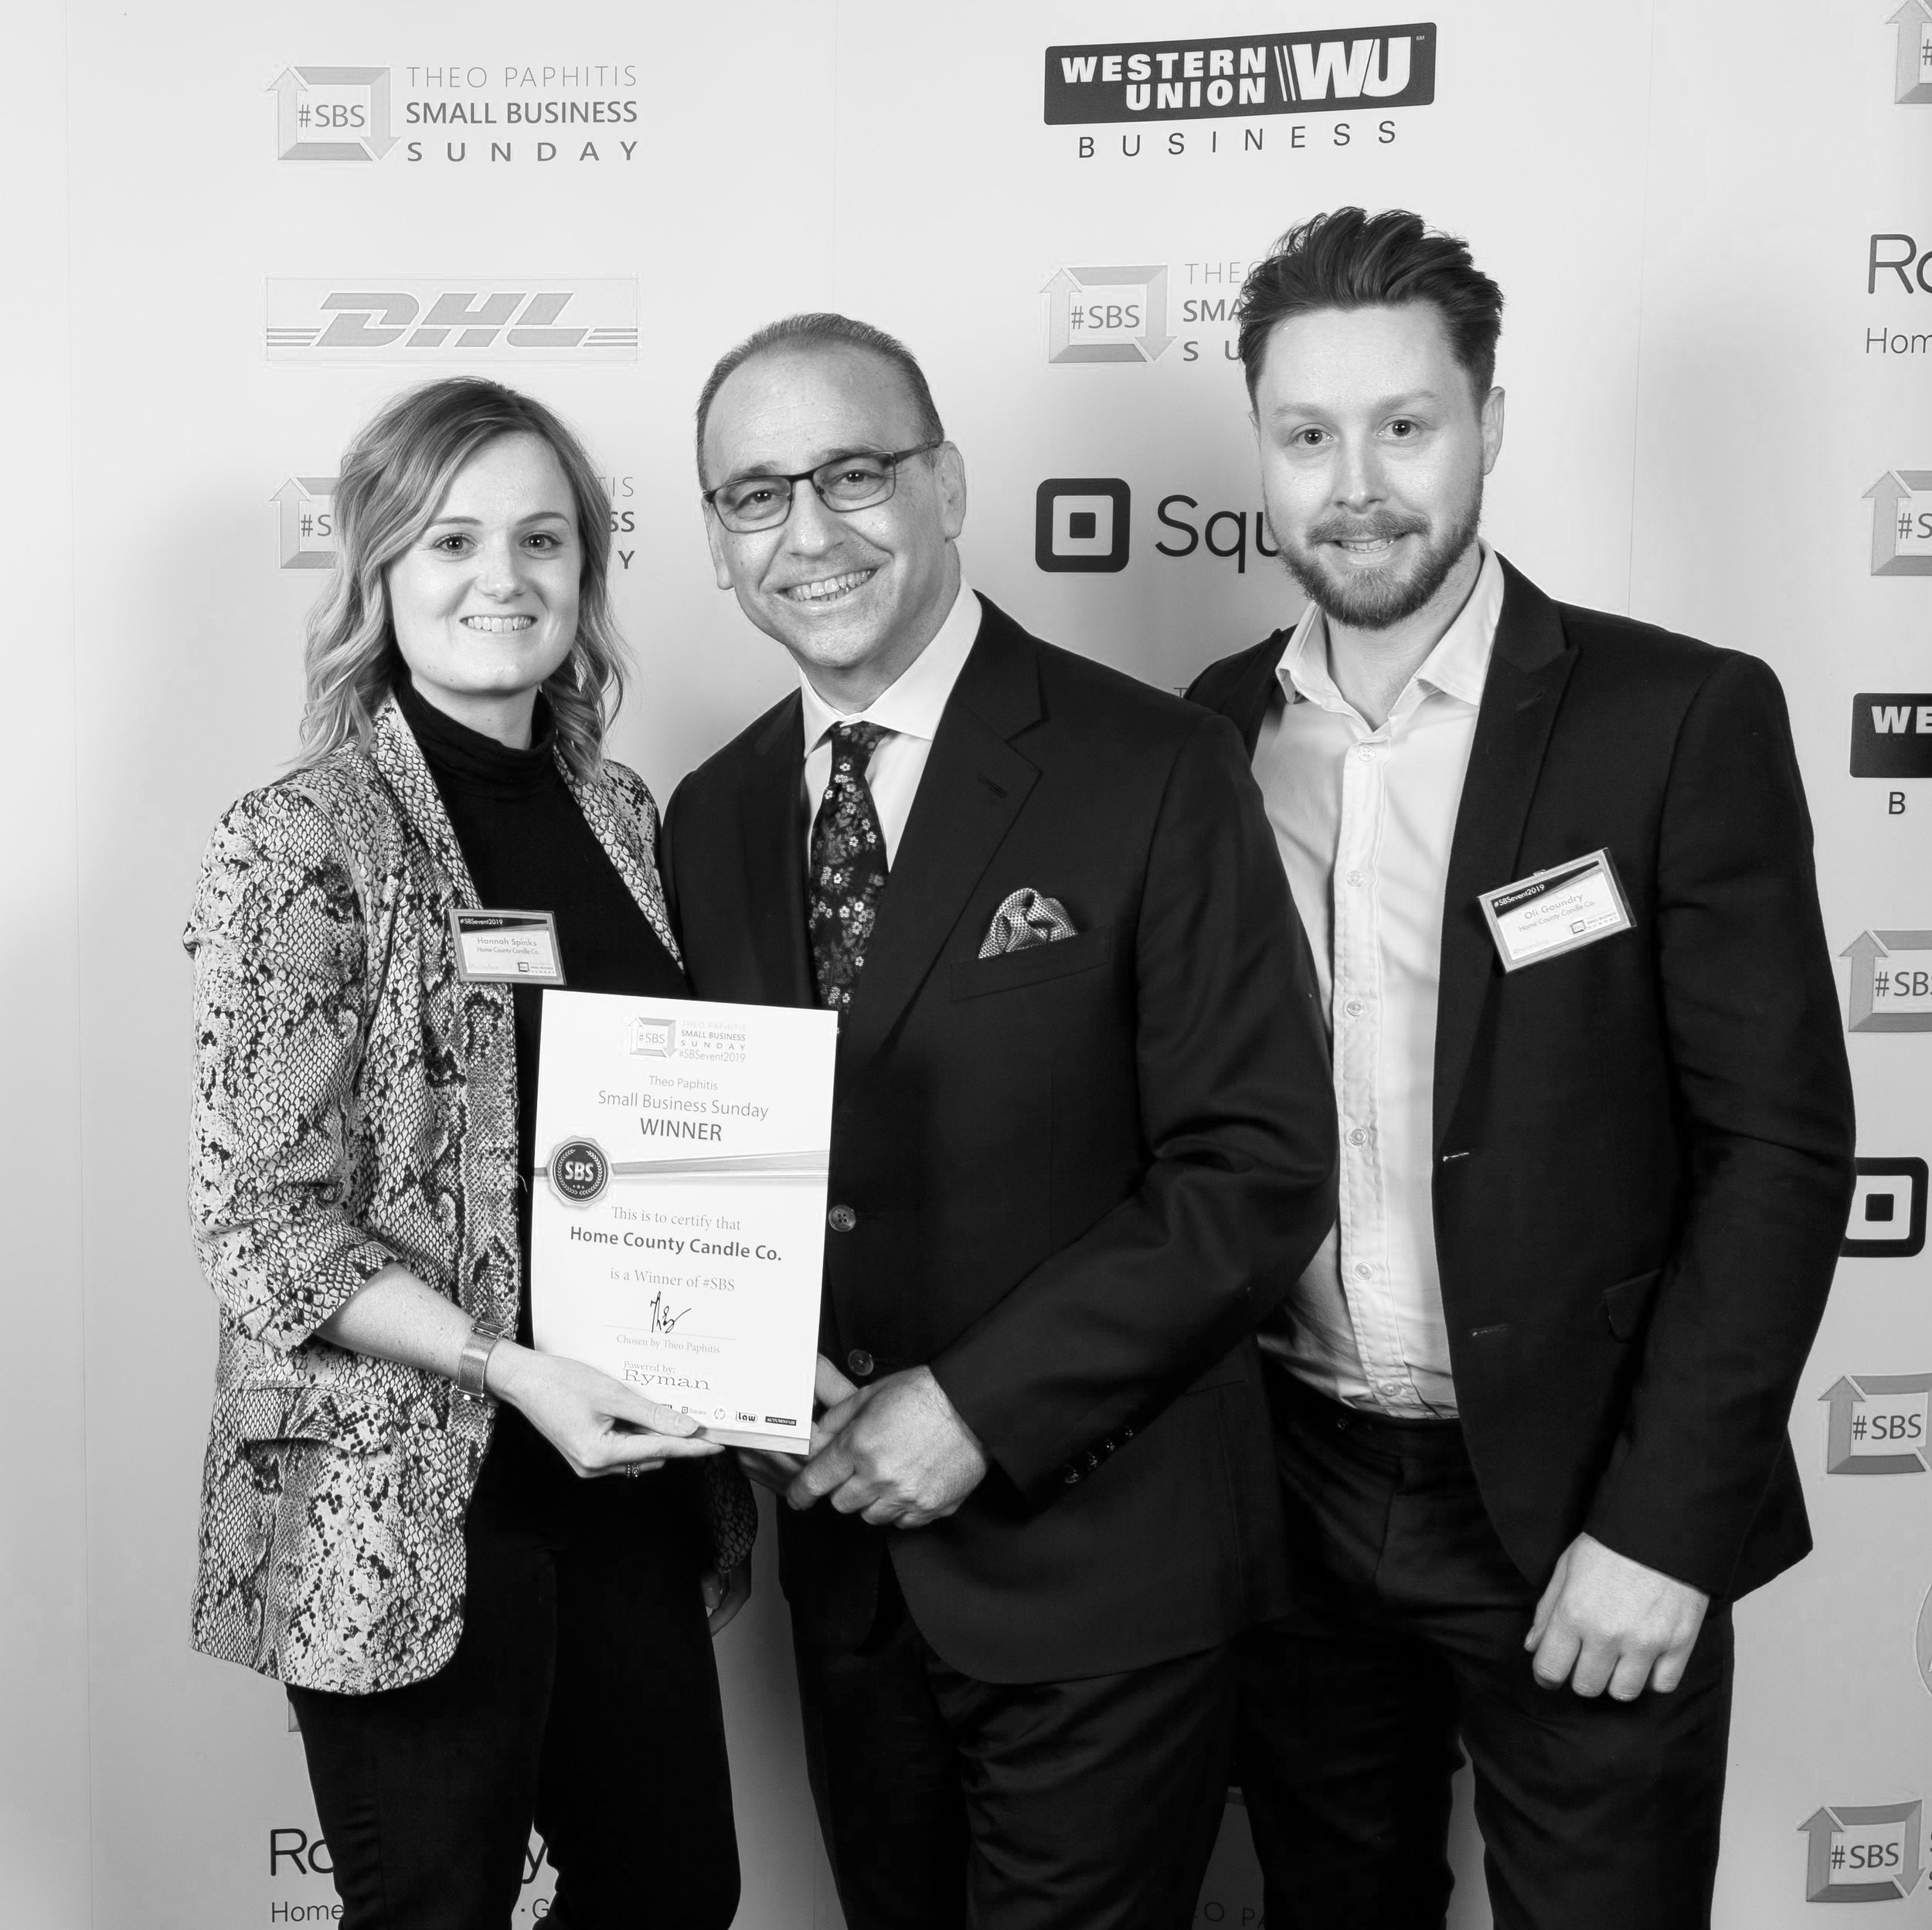 the man himself… - To close the show it was then time for this year's winners to collect our certificates and have a photo with the man himself, Theo Paphitis.Having not received a certificate since graduation, it felt amazing to be awarded with something tangible which affirms the hard work we've put in throughout our first year. As small business owners it's very rare you find the time to give yourselves a pat on the back or reflect - it's always onto the next one straight away!Theo couldn't have been friendlier (even when I did have to point out that we'd have to swap positions to get the photo from 'my good side')! It's clear to see the passion he has for SBS and we felt he genuinely wanted to hear about our day and wants every attendee to get the most out of their experience.We cannot thank him enough for having us, we really do feel that our first SBS event was just the tip of the iceberg - the community is full of such brilliant, like-minded contacts that we feel the possibilities really are endless!